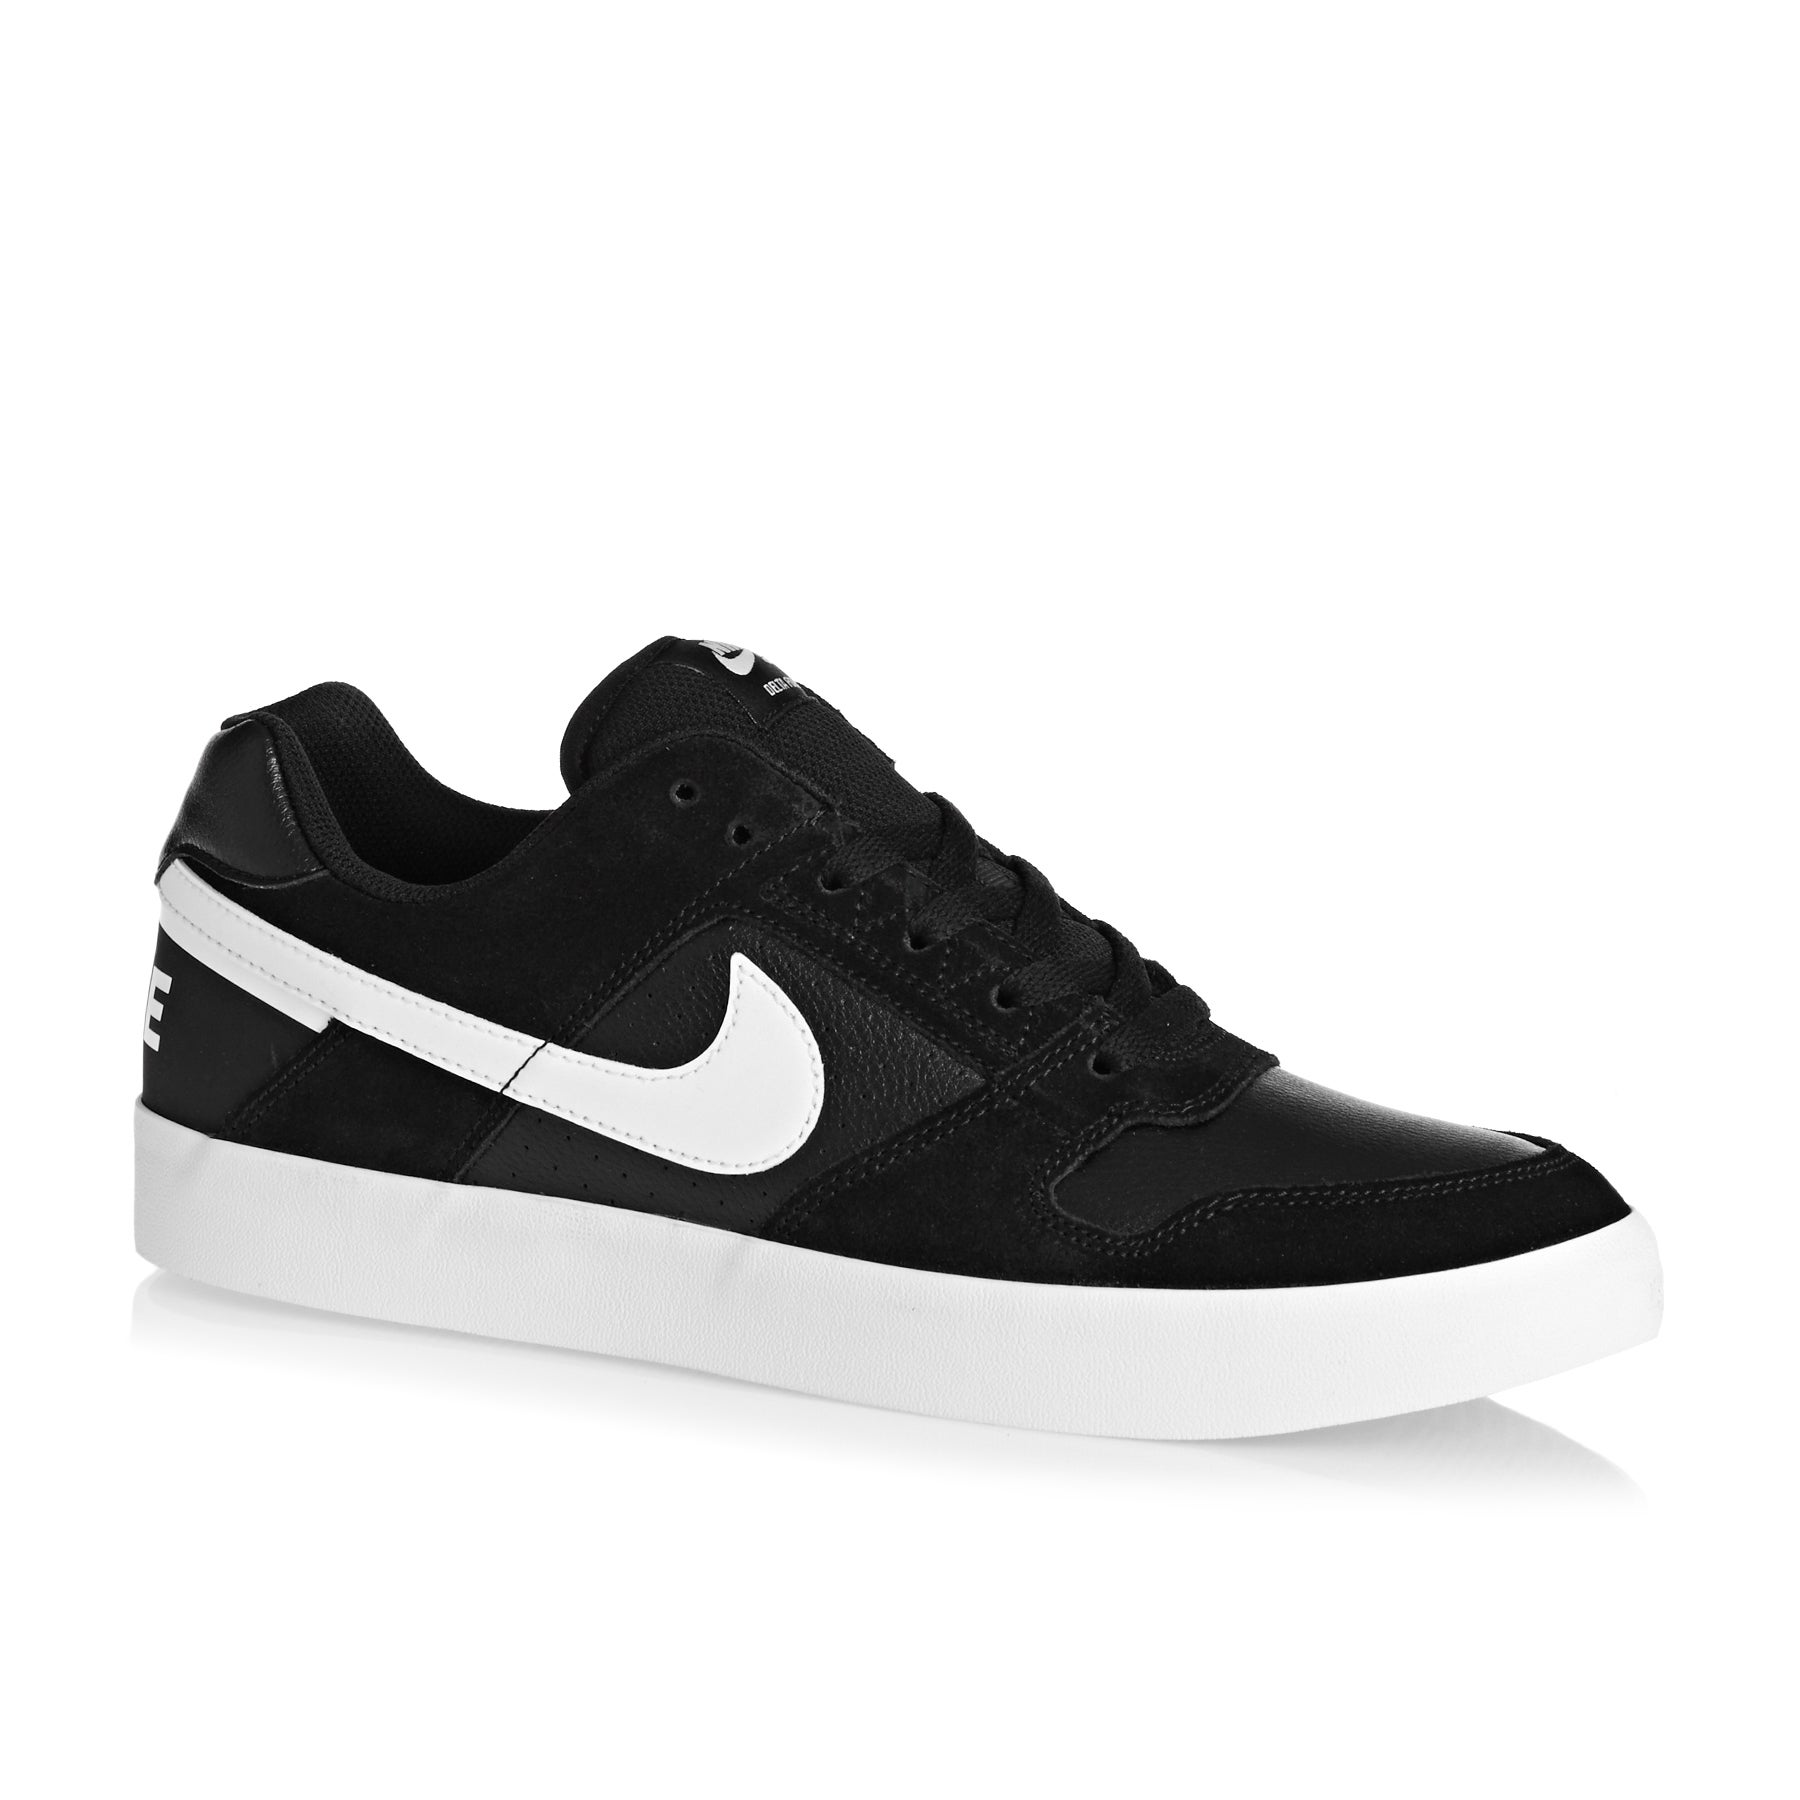 daf6b37626af Nike SB Zoom Delta Force Vulc Shoes available from Surfdome